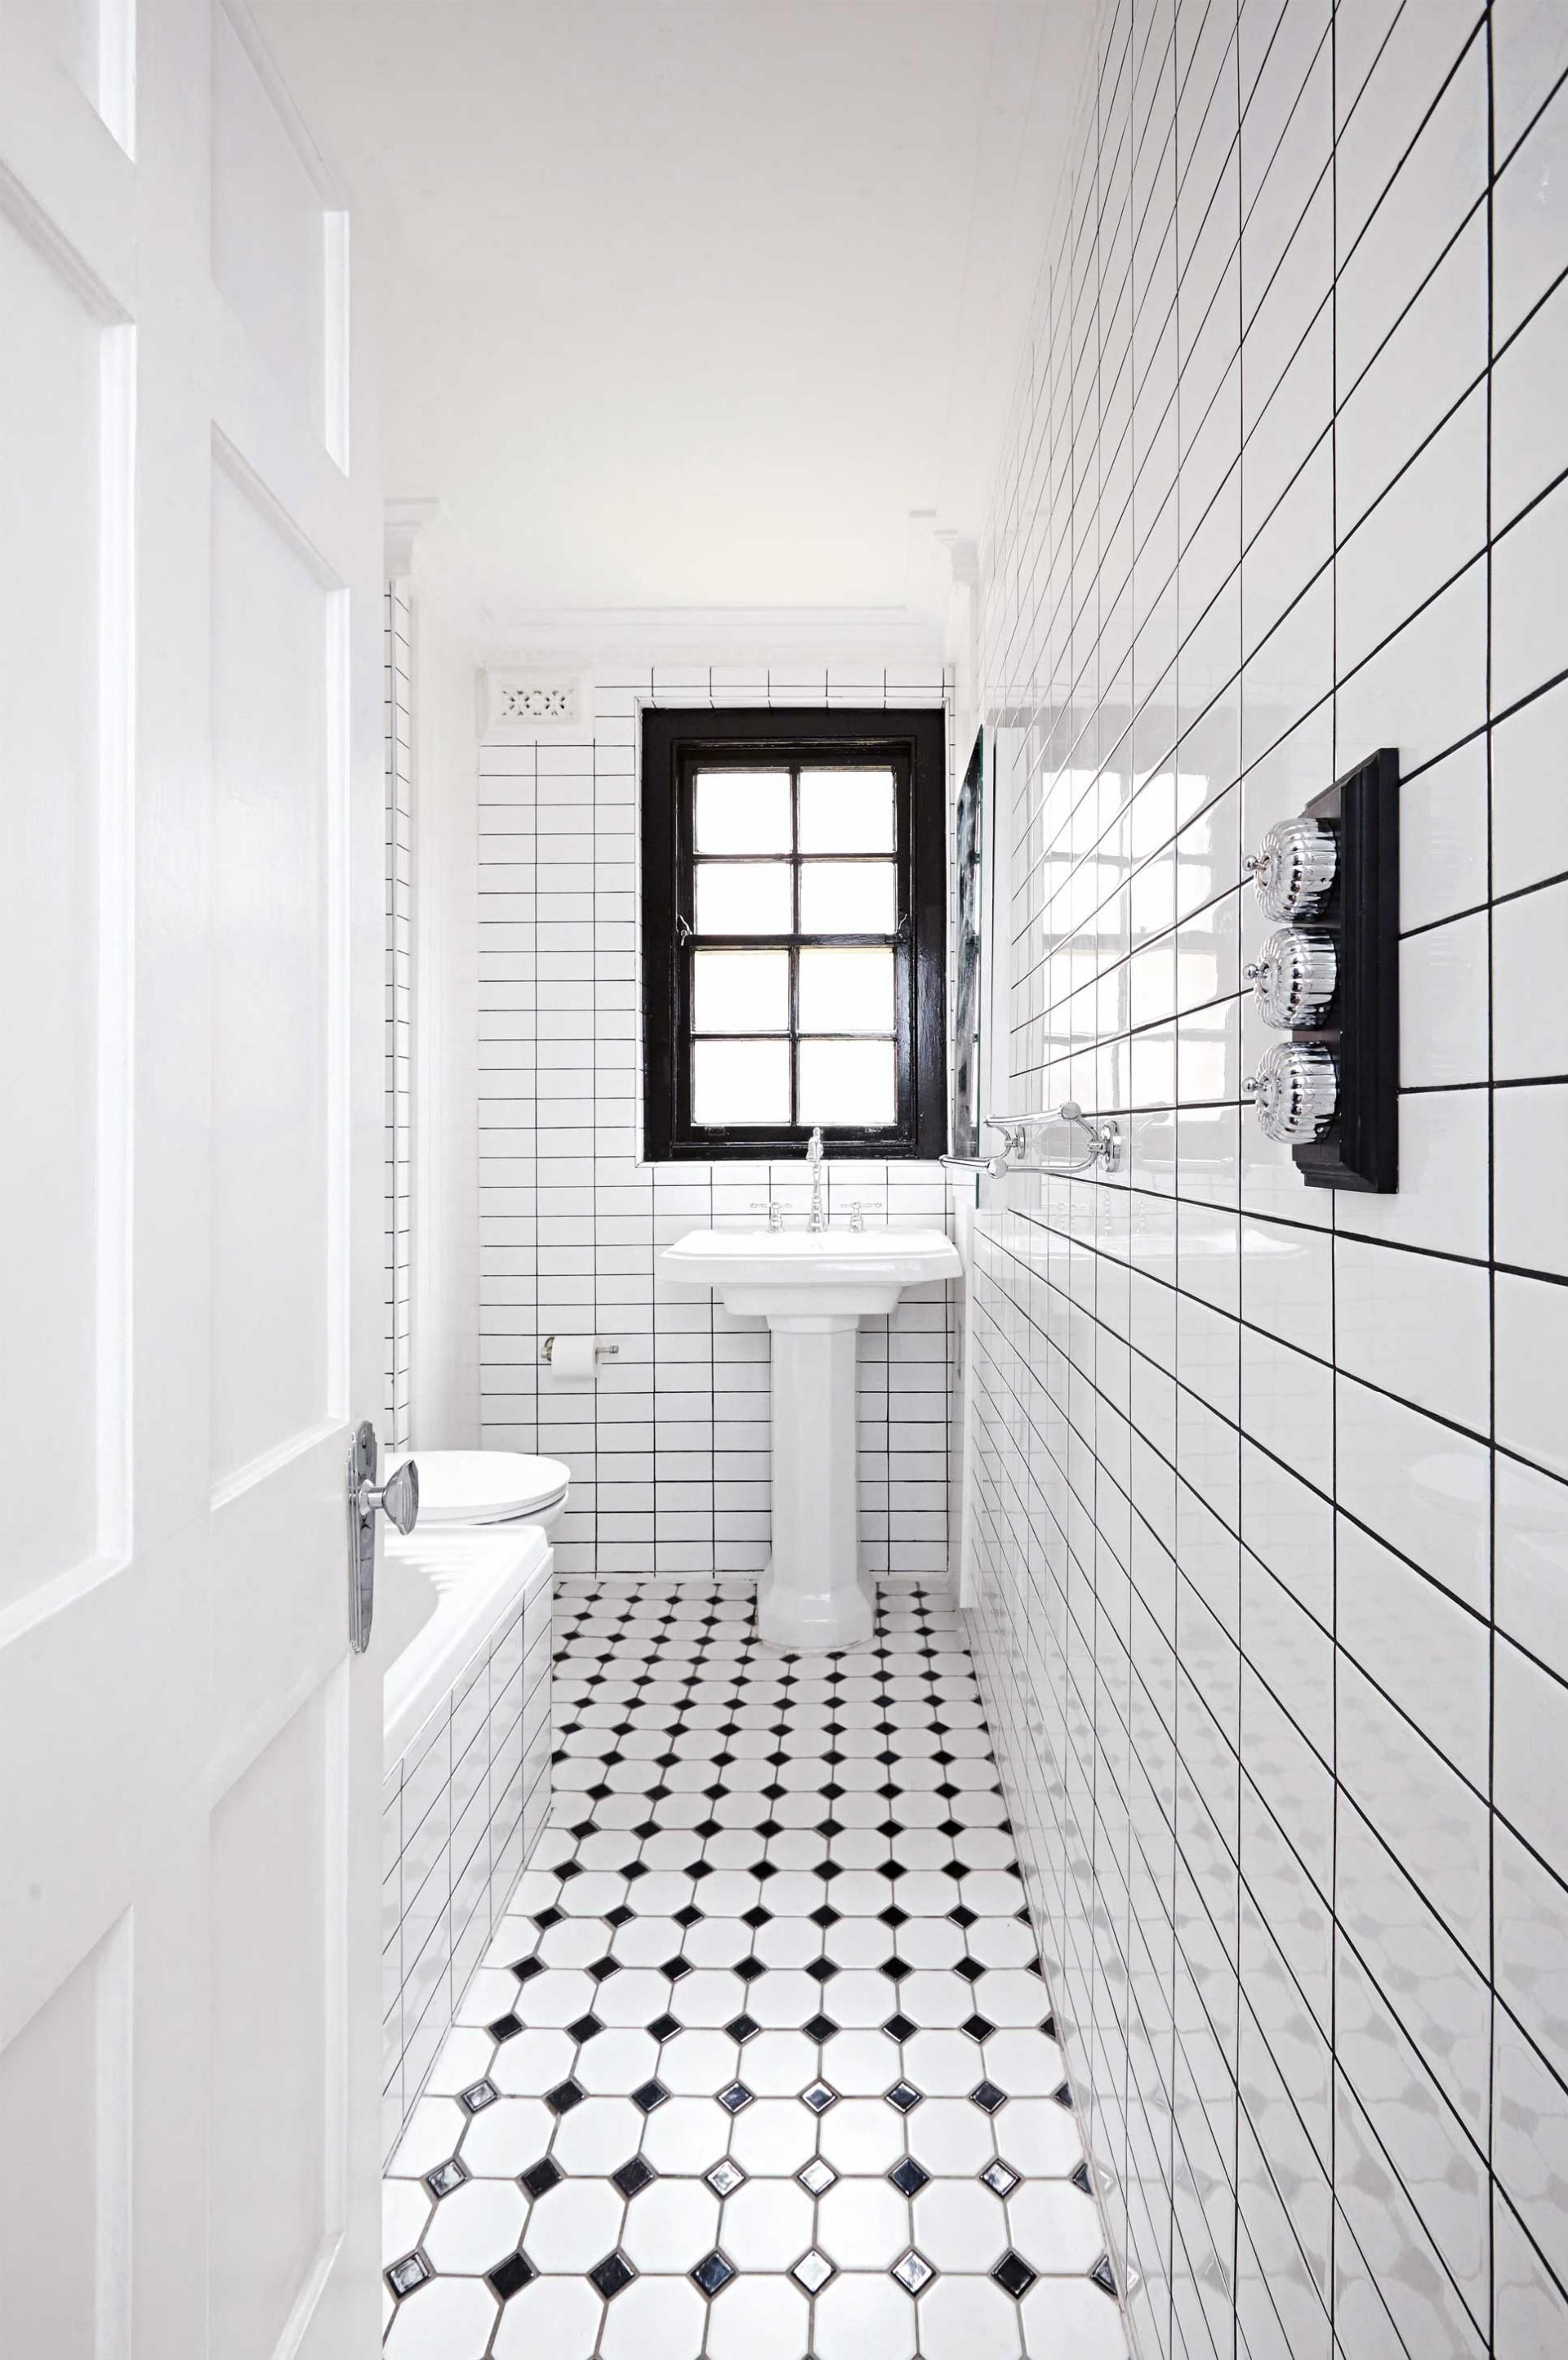 10 Black White Bathrooms Bathroom Renovation Cost Black White Bathrooms Bathroom Design Small